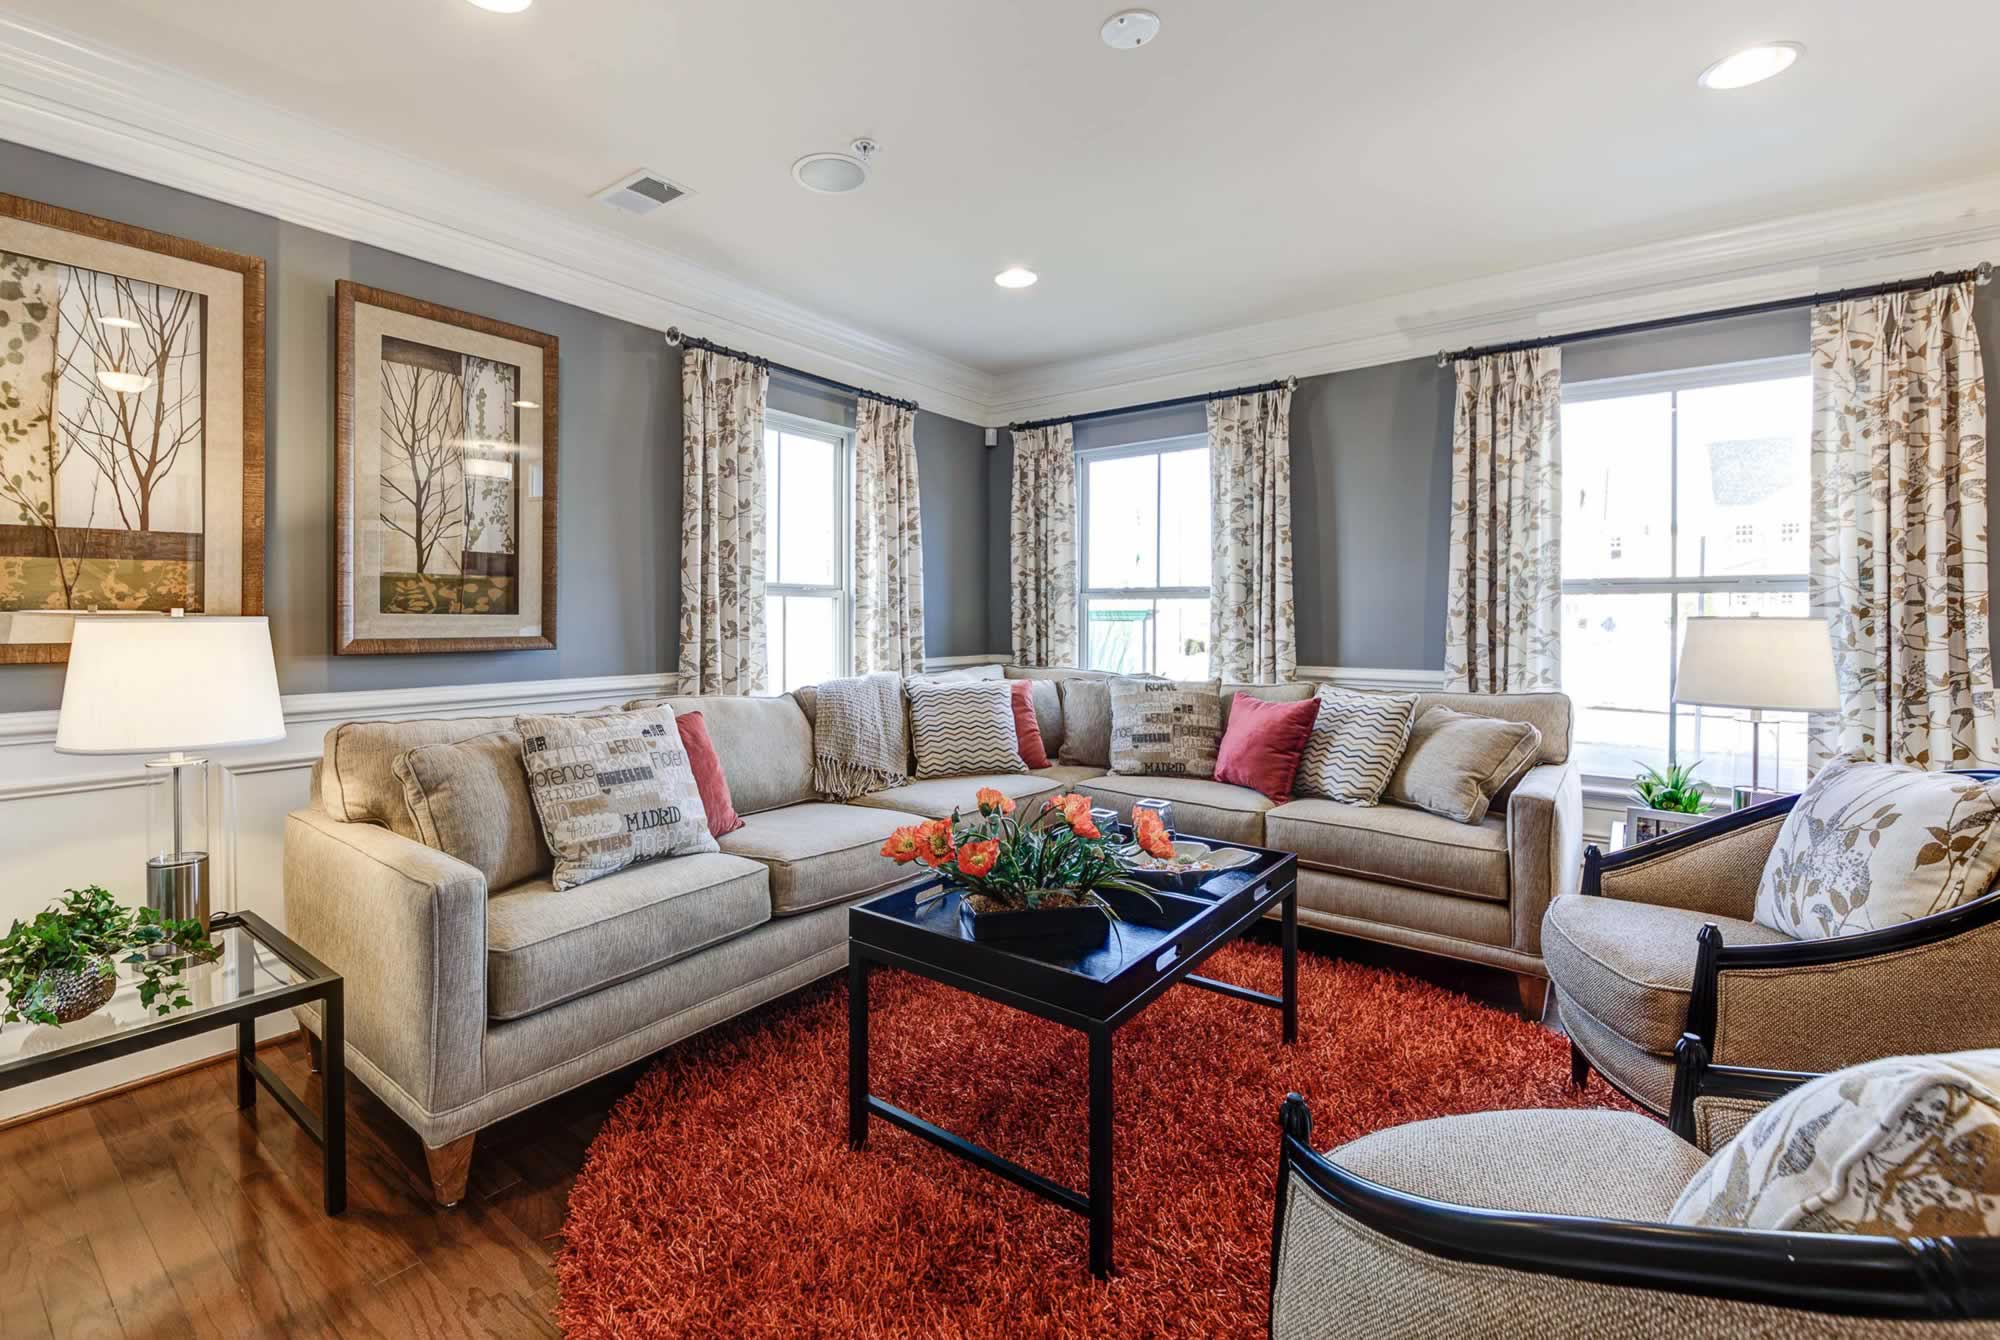 Additional photo for property listing at Clarksburg Village (Townhomes)-The Annapolis 11870 Snowden Farm Pkwy Germantown, Maryland 20876 United States